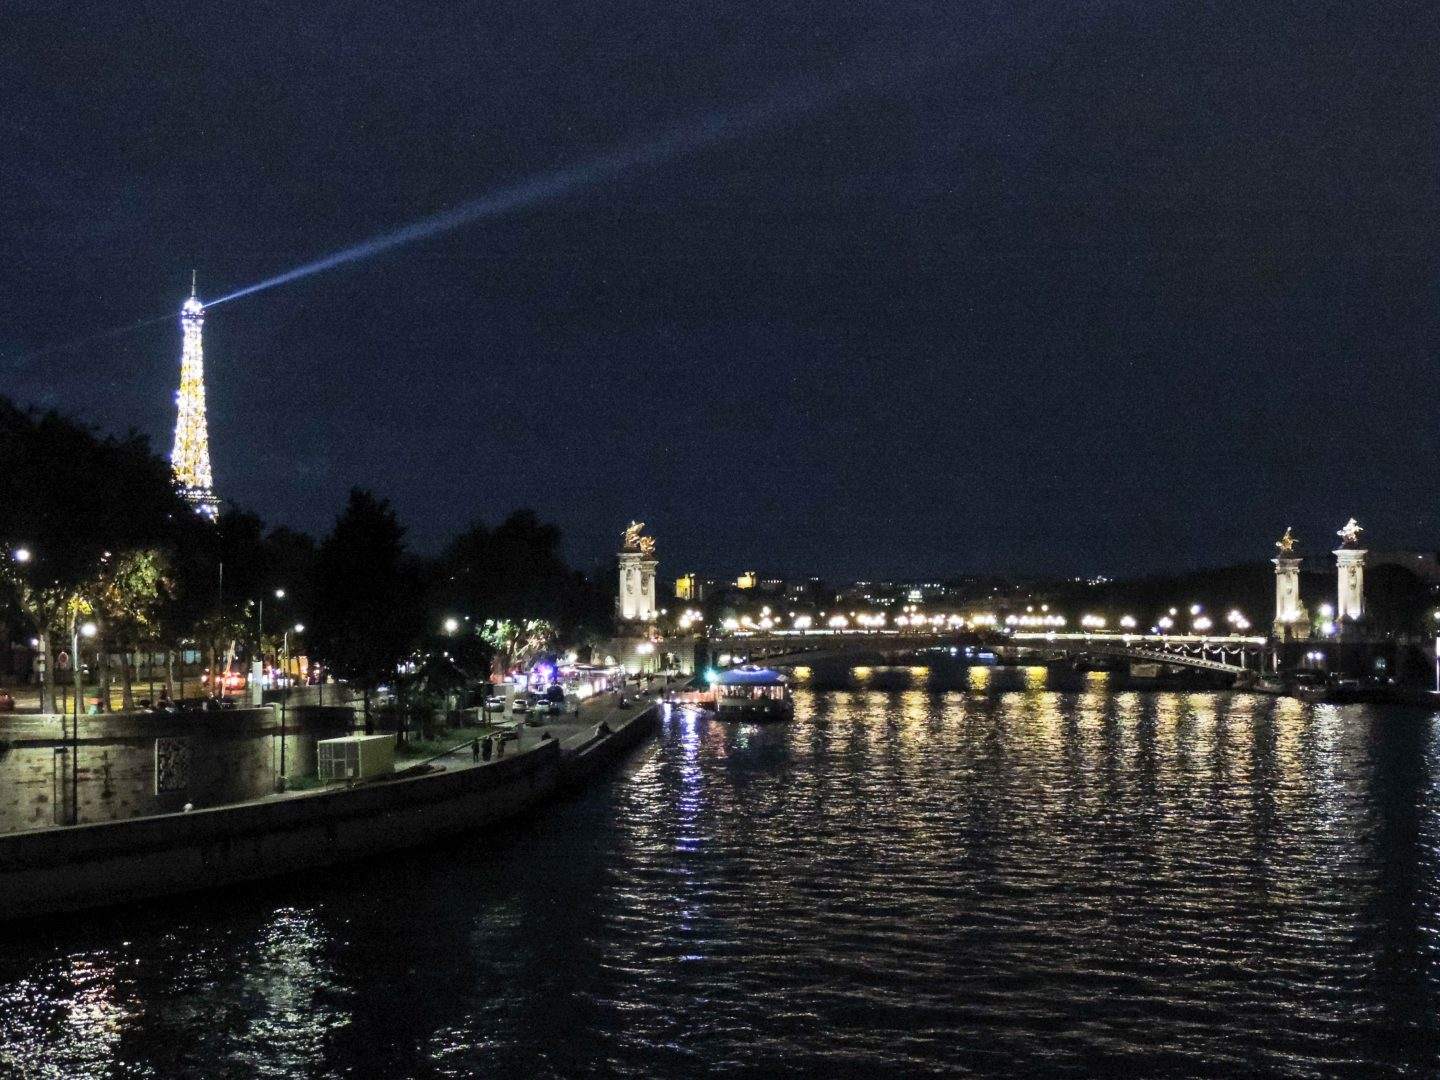 Postcards From Paris: The City of Lights